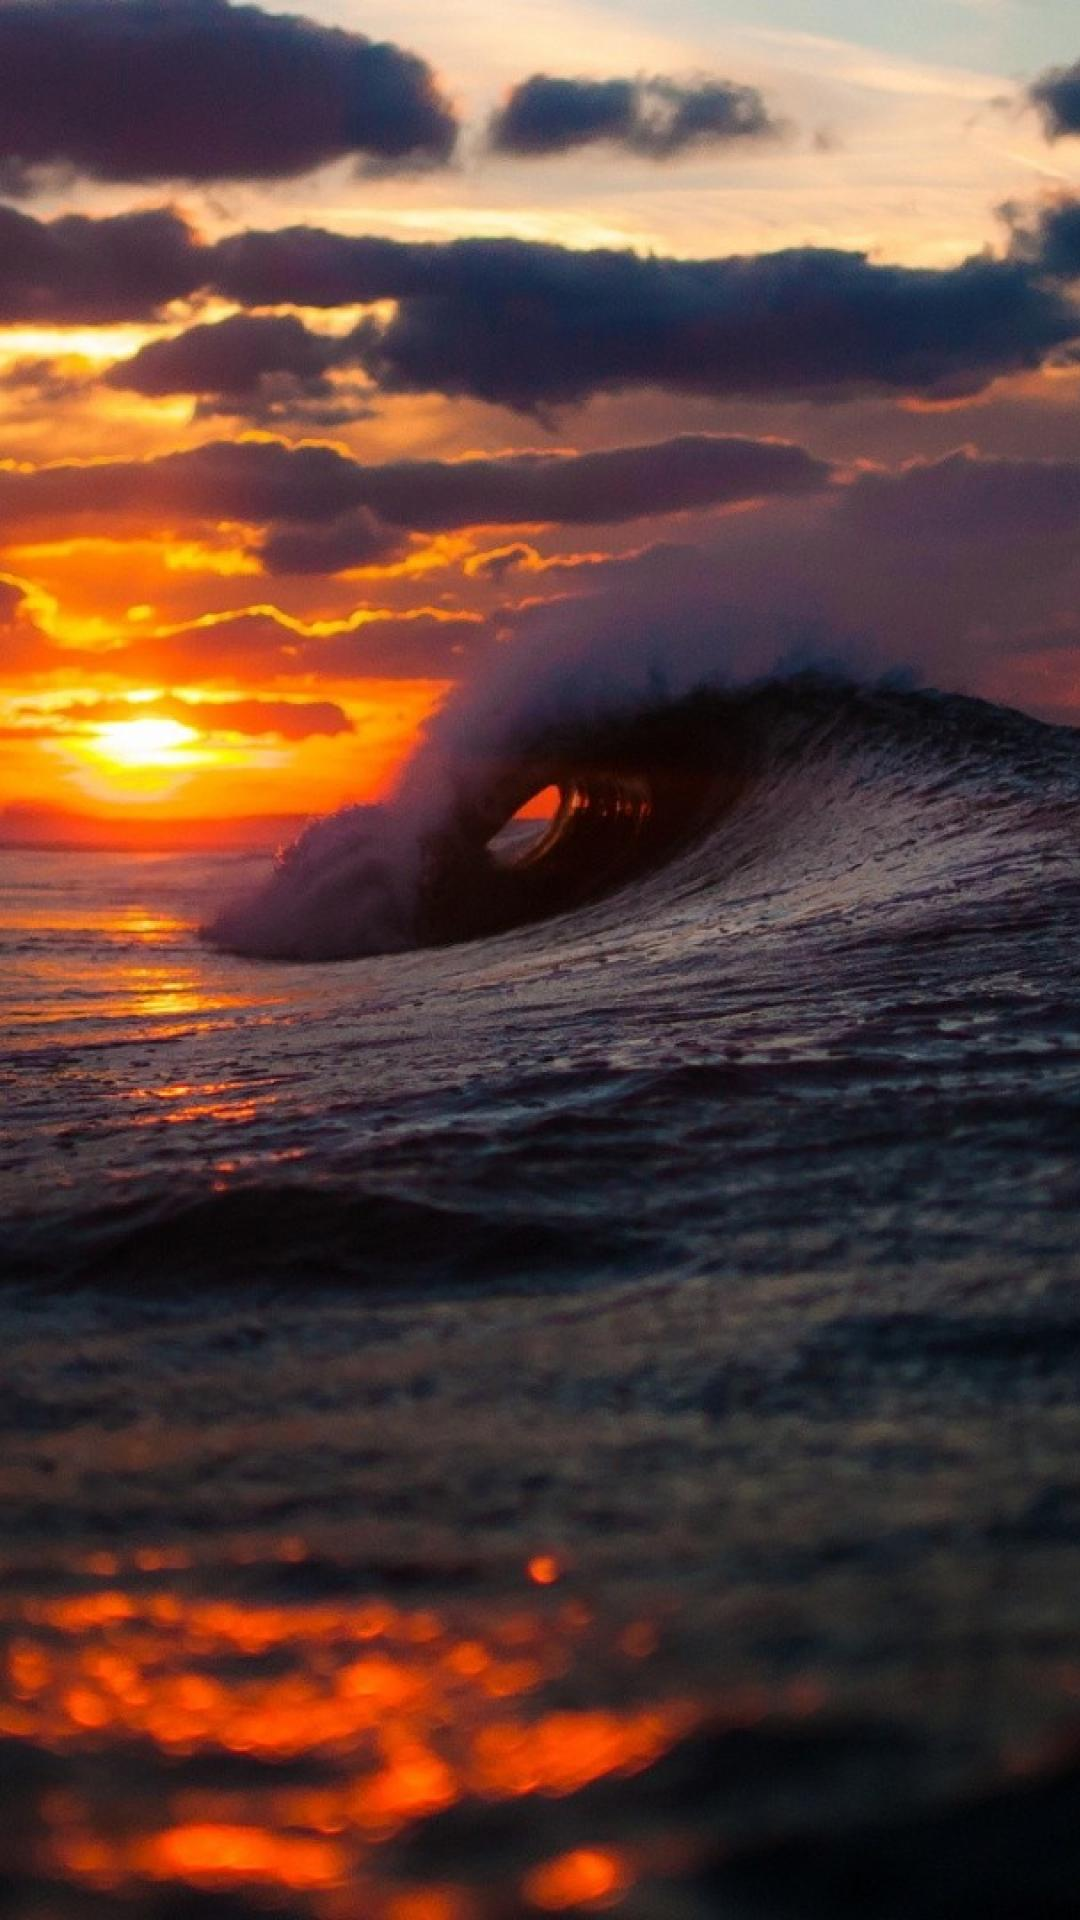 Sunset Wave Wallpapers - Top Free Sunset Wave Backgrounds ...